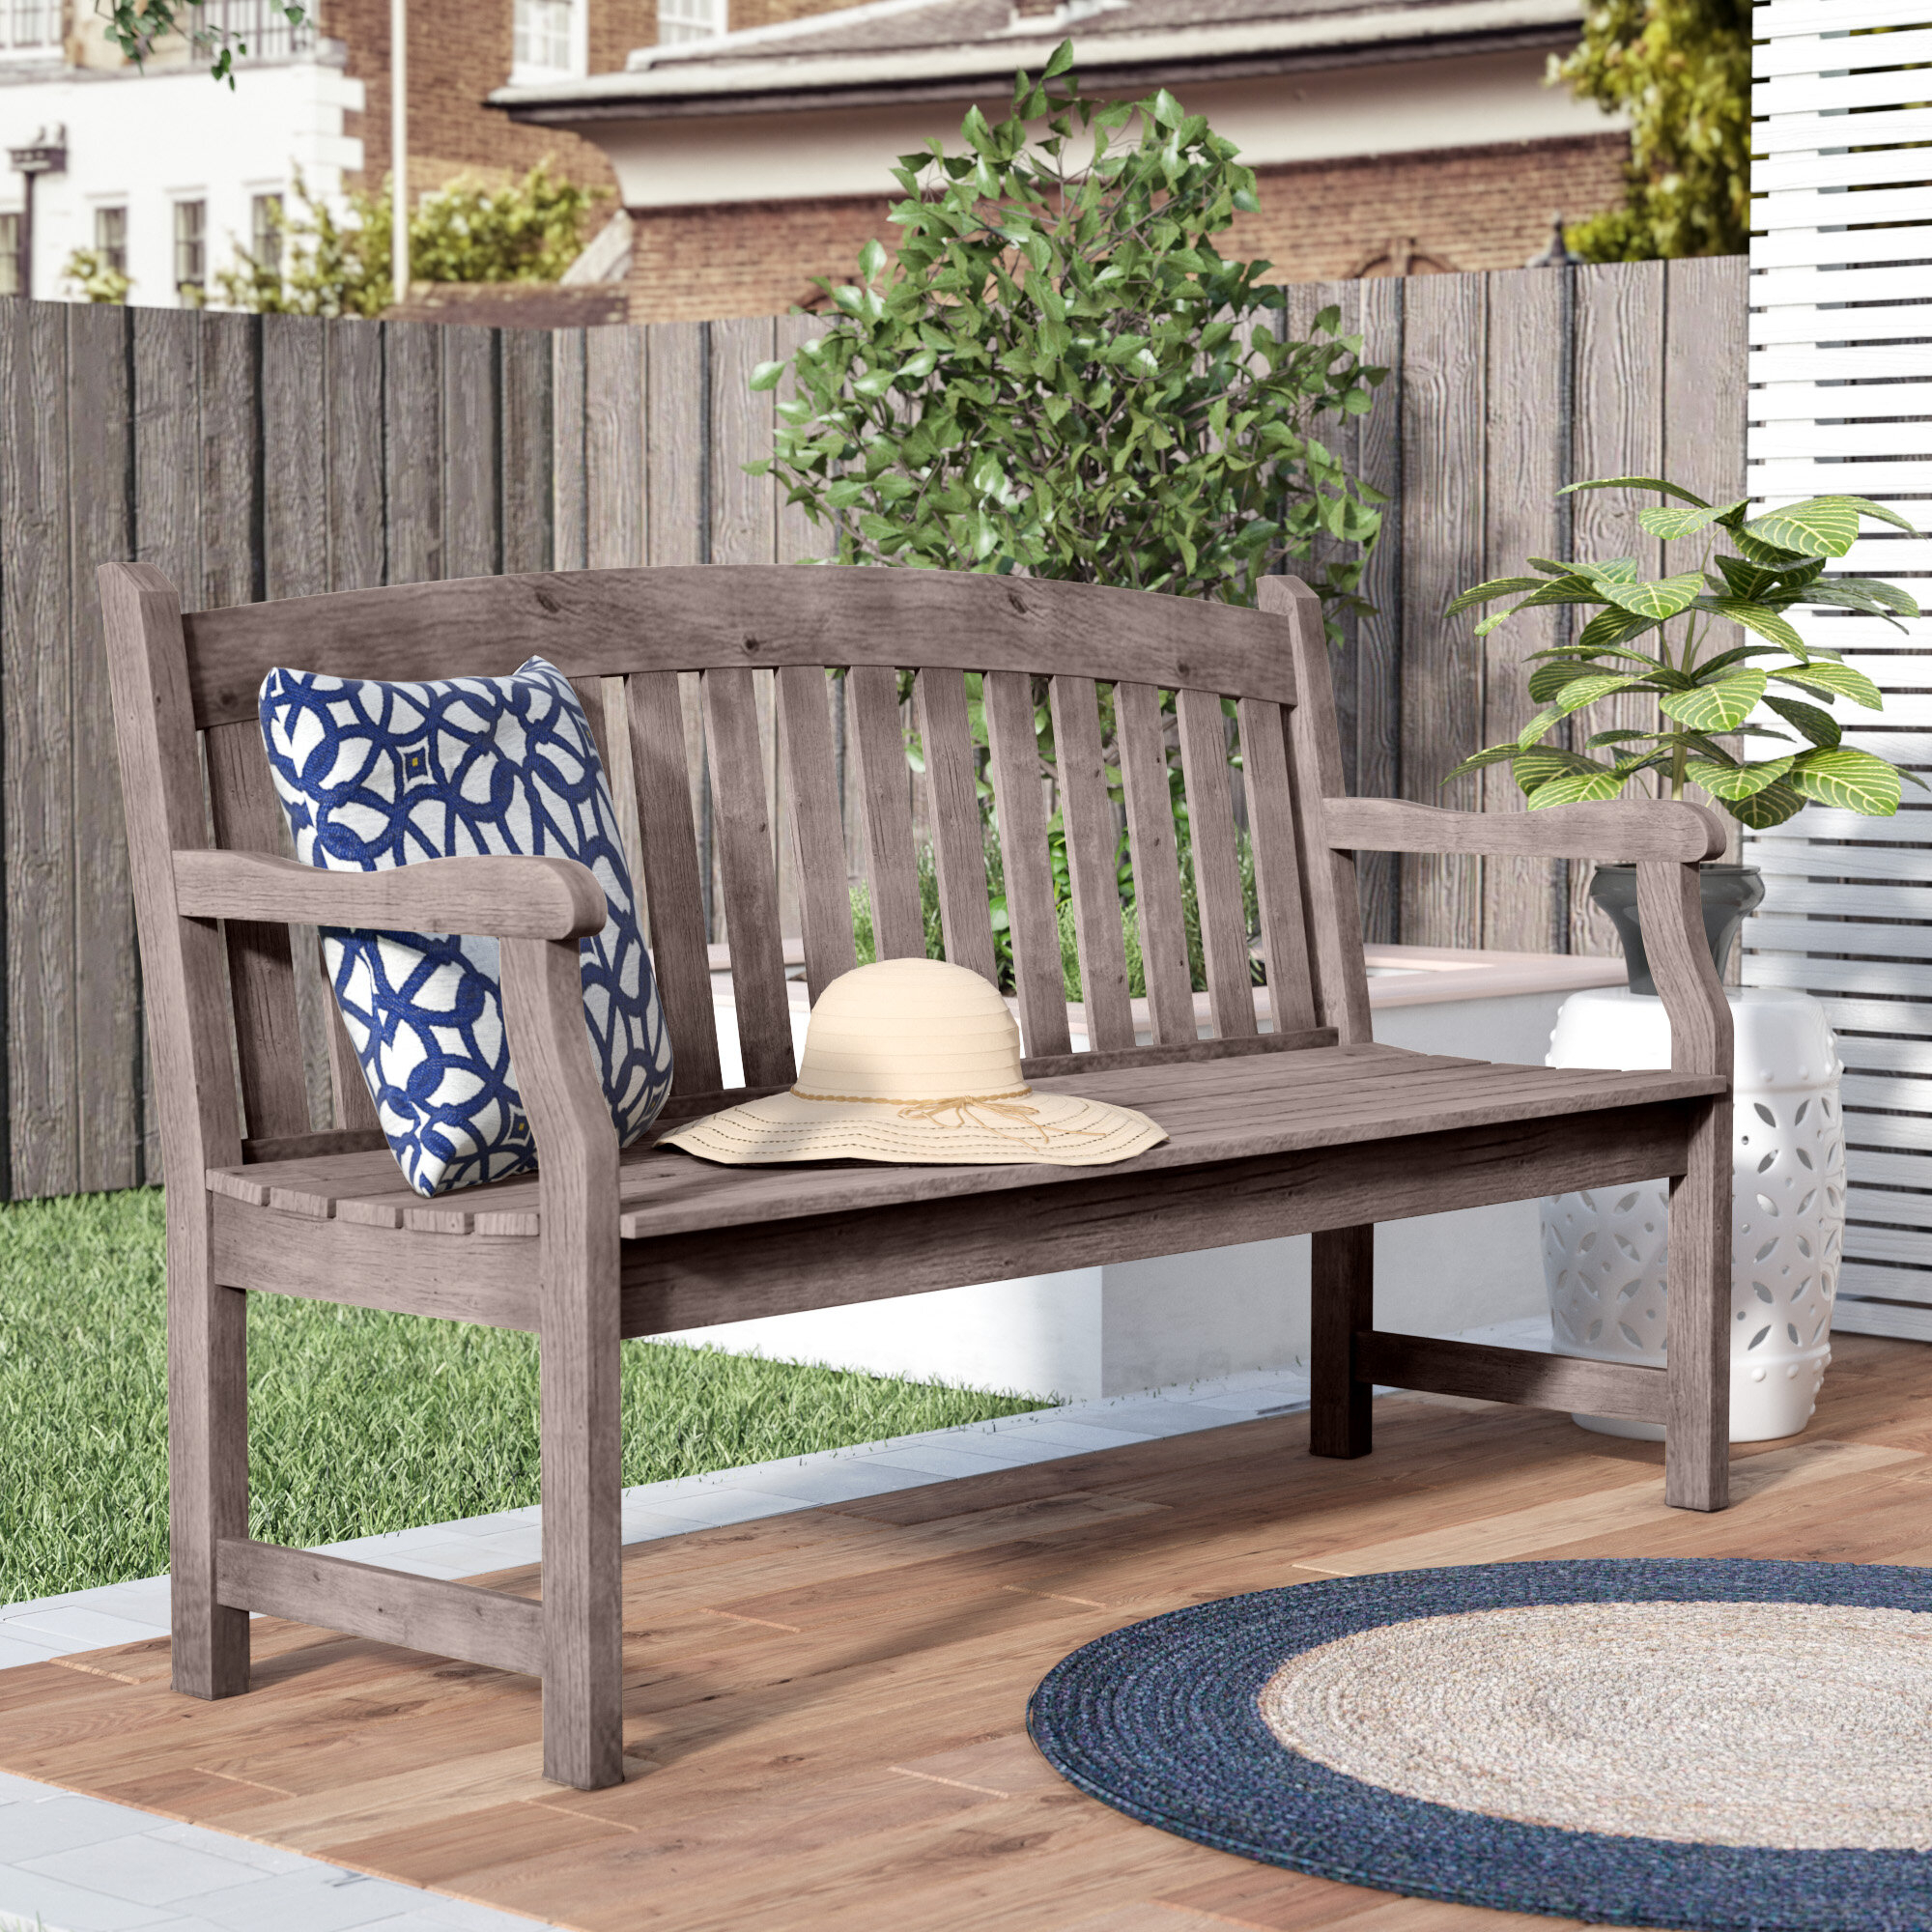 Zephyrine Patio Dining Wooden Picnic Bench With Regard To Lucille Timberland Wooden Garden Benches (View 13 of 25)